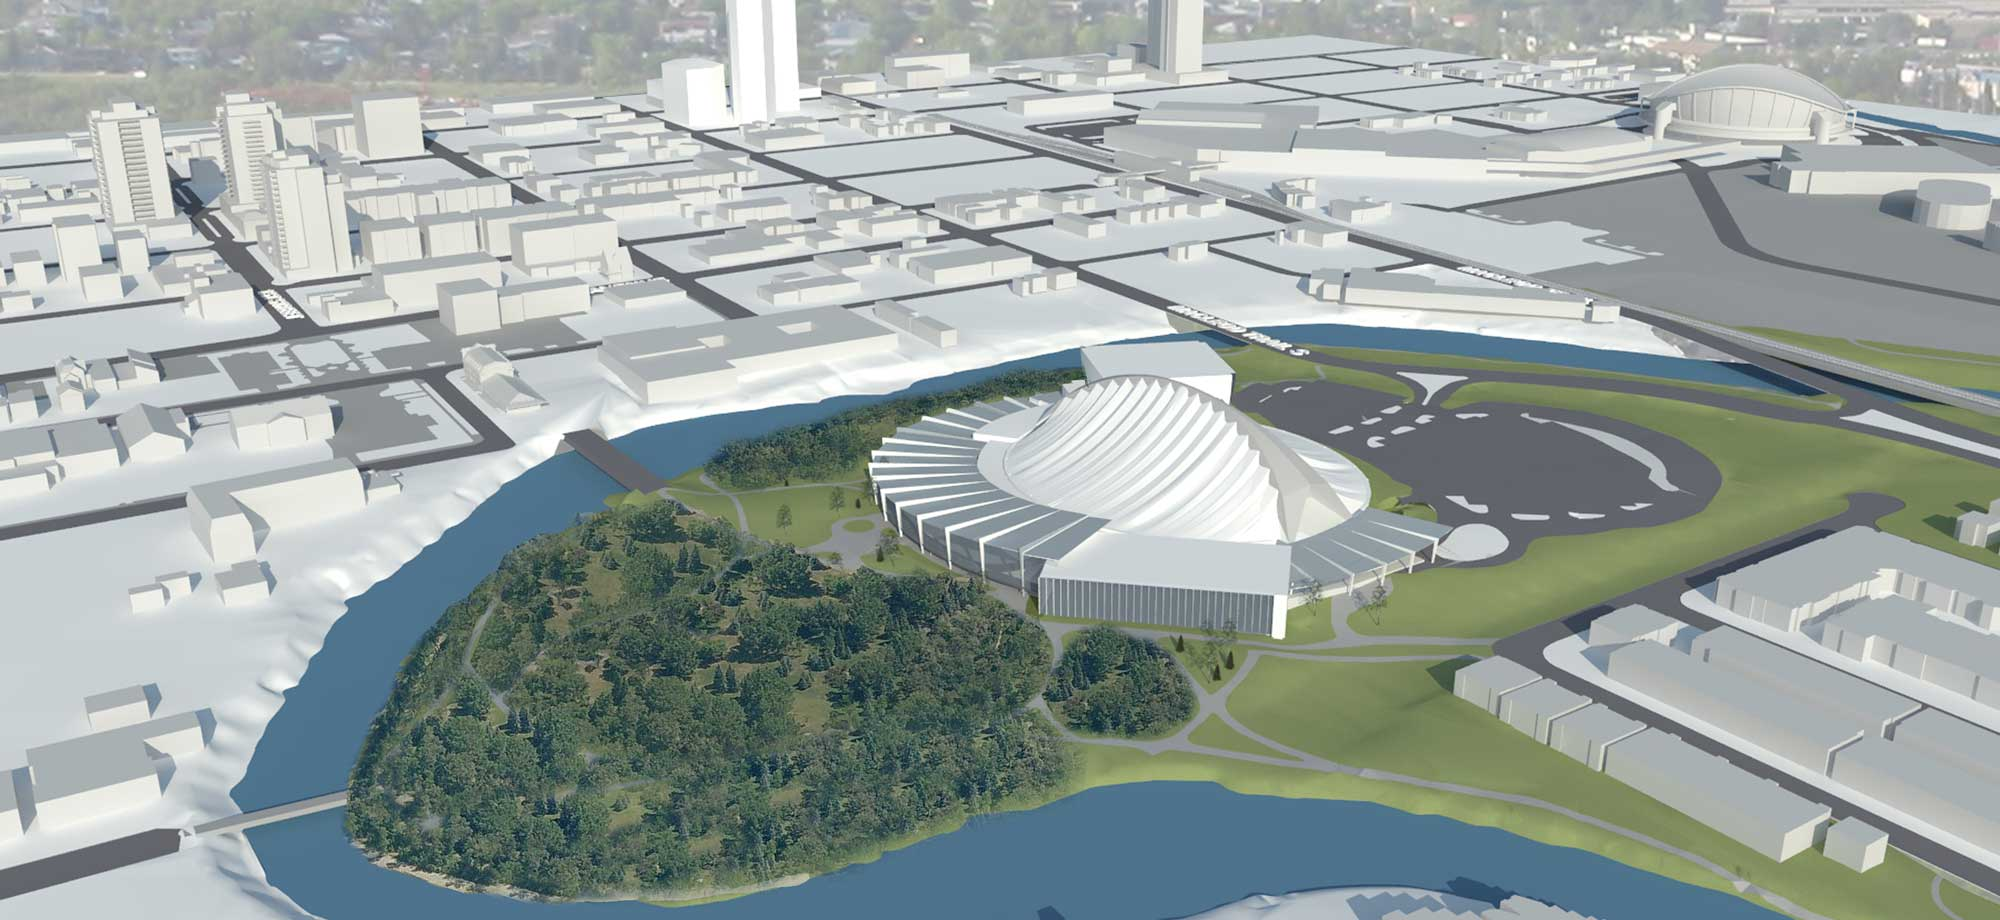 Repsol Sports Centre Master Plan